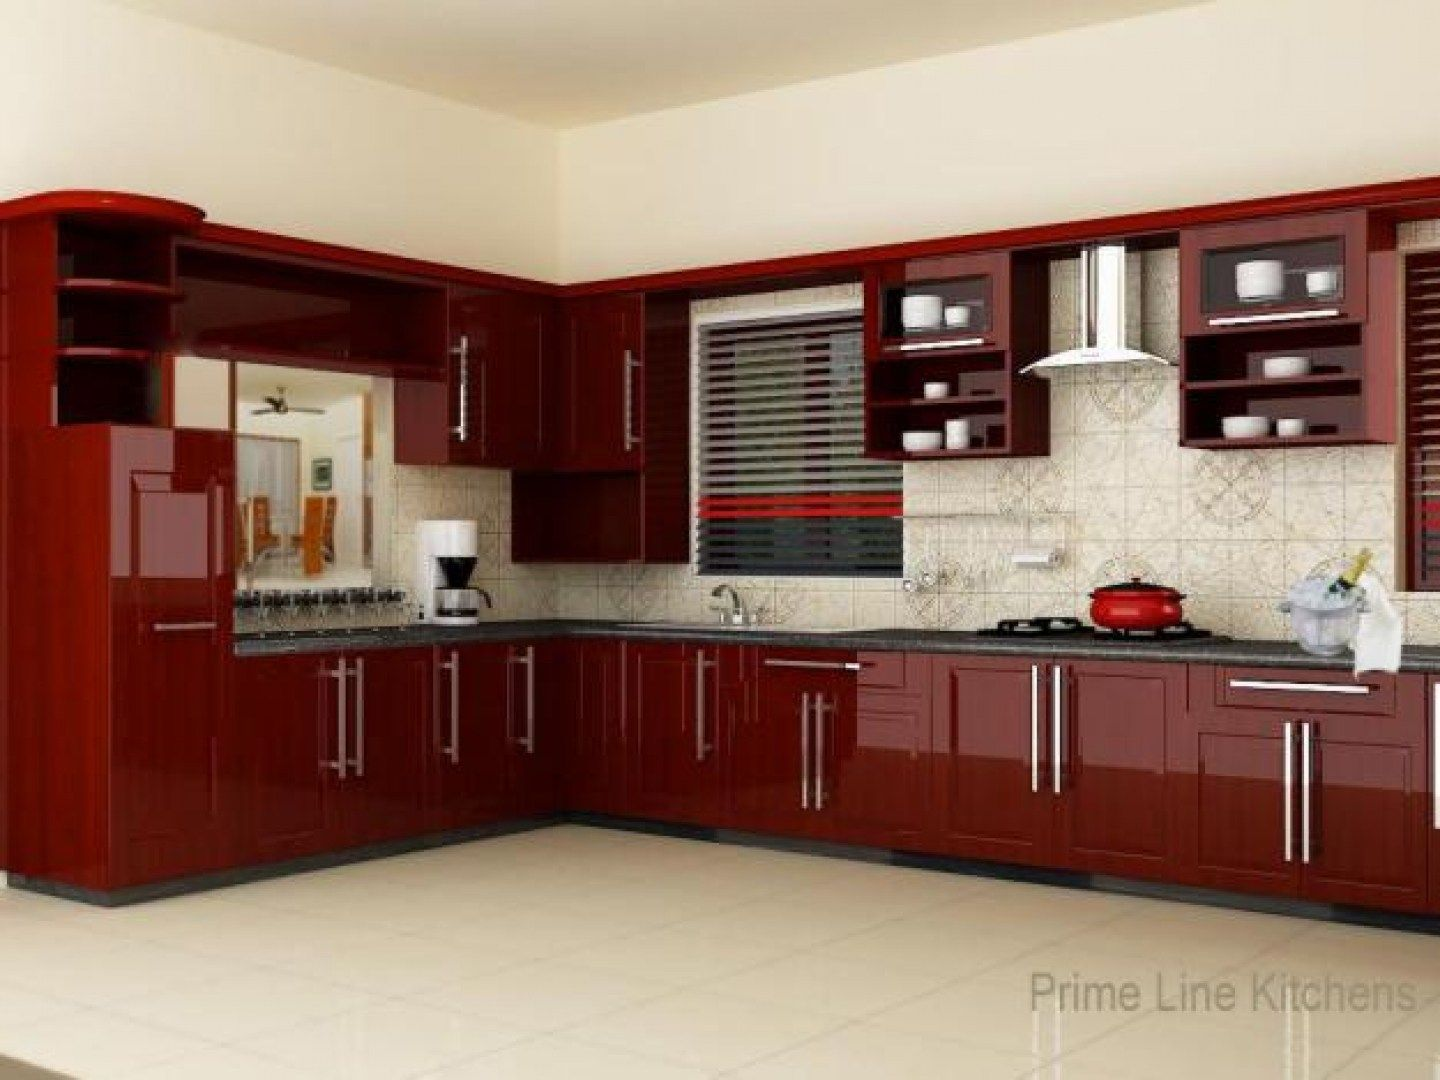 Kitchen design ideas kitchen woodwork designs hyderabad download king platform bed designs Kitchen cabinet door design ideas